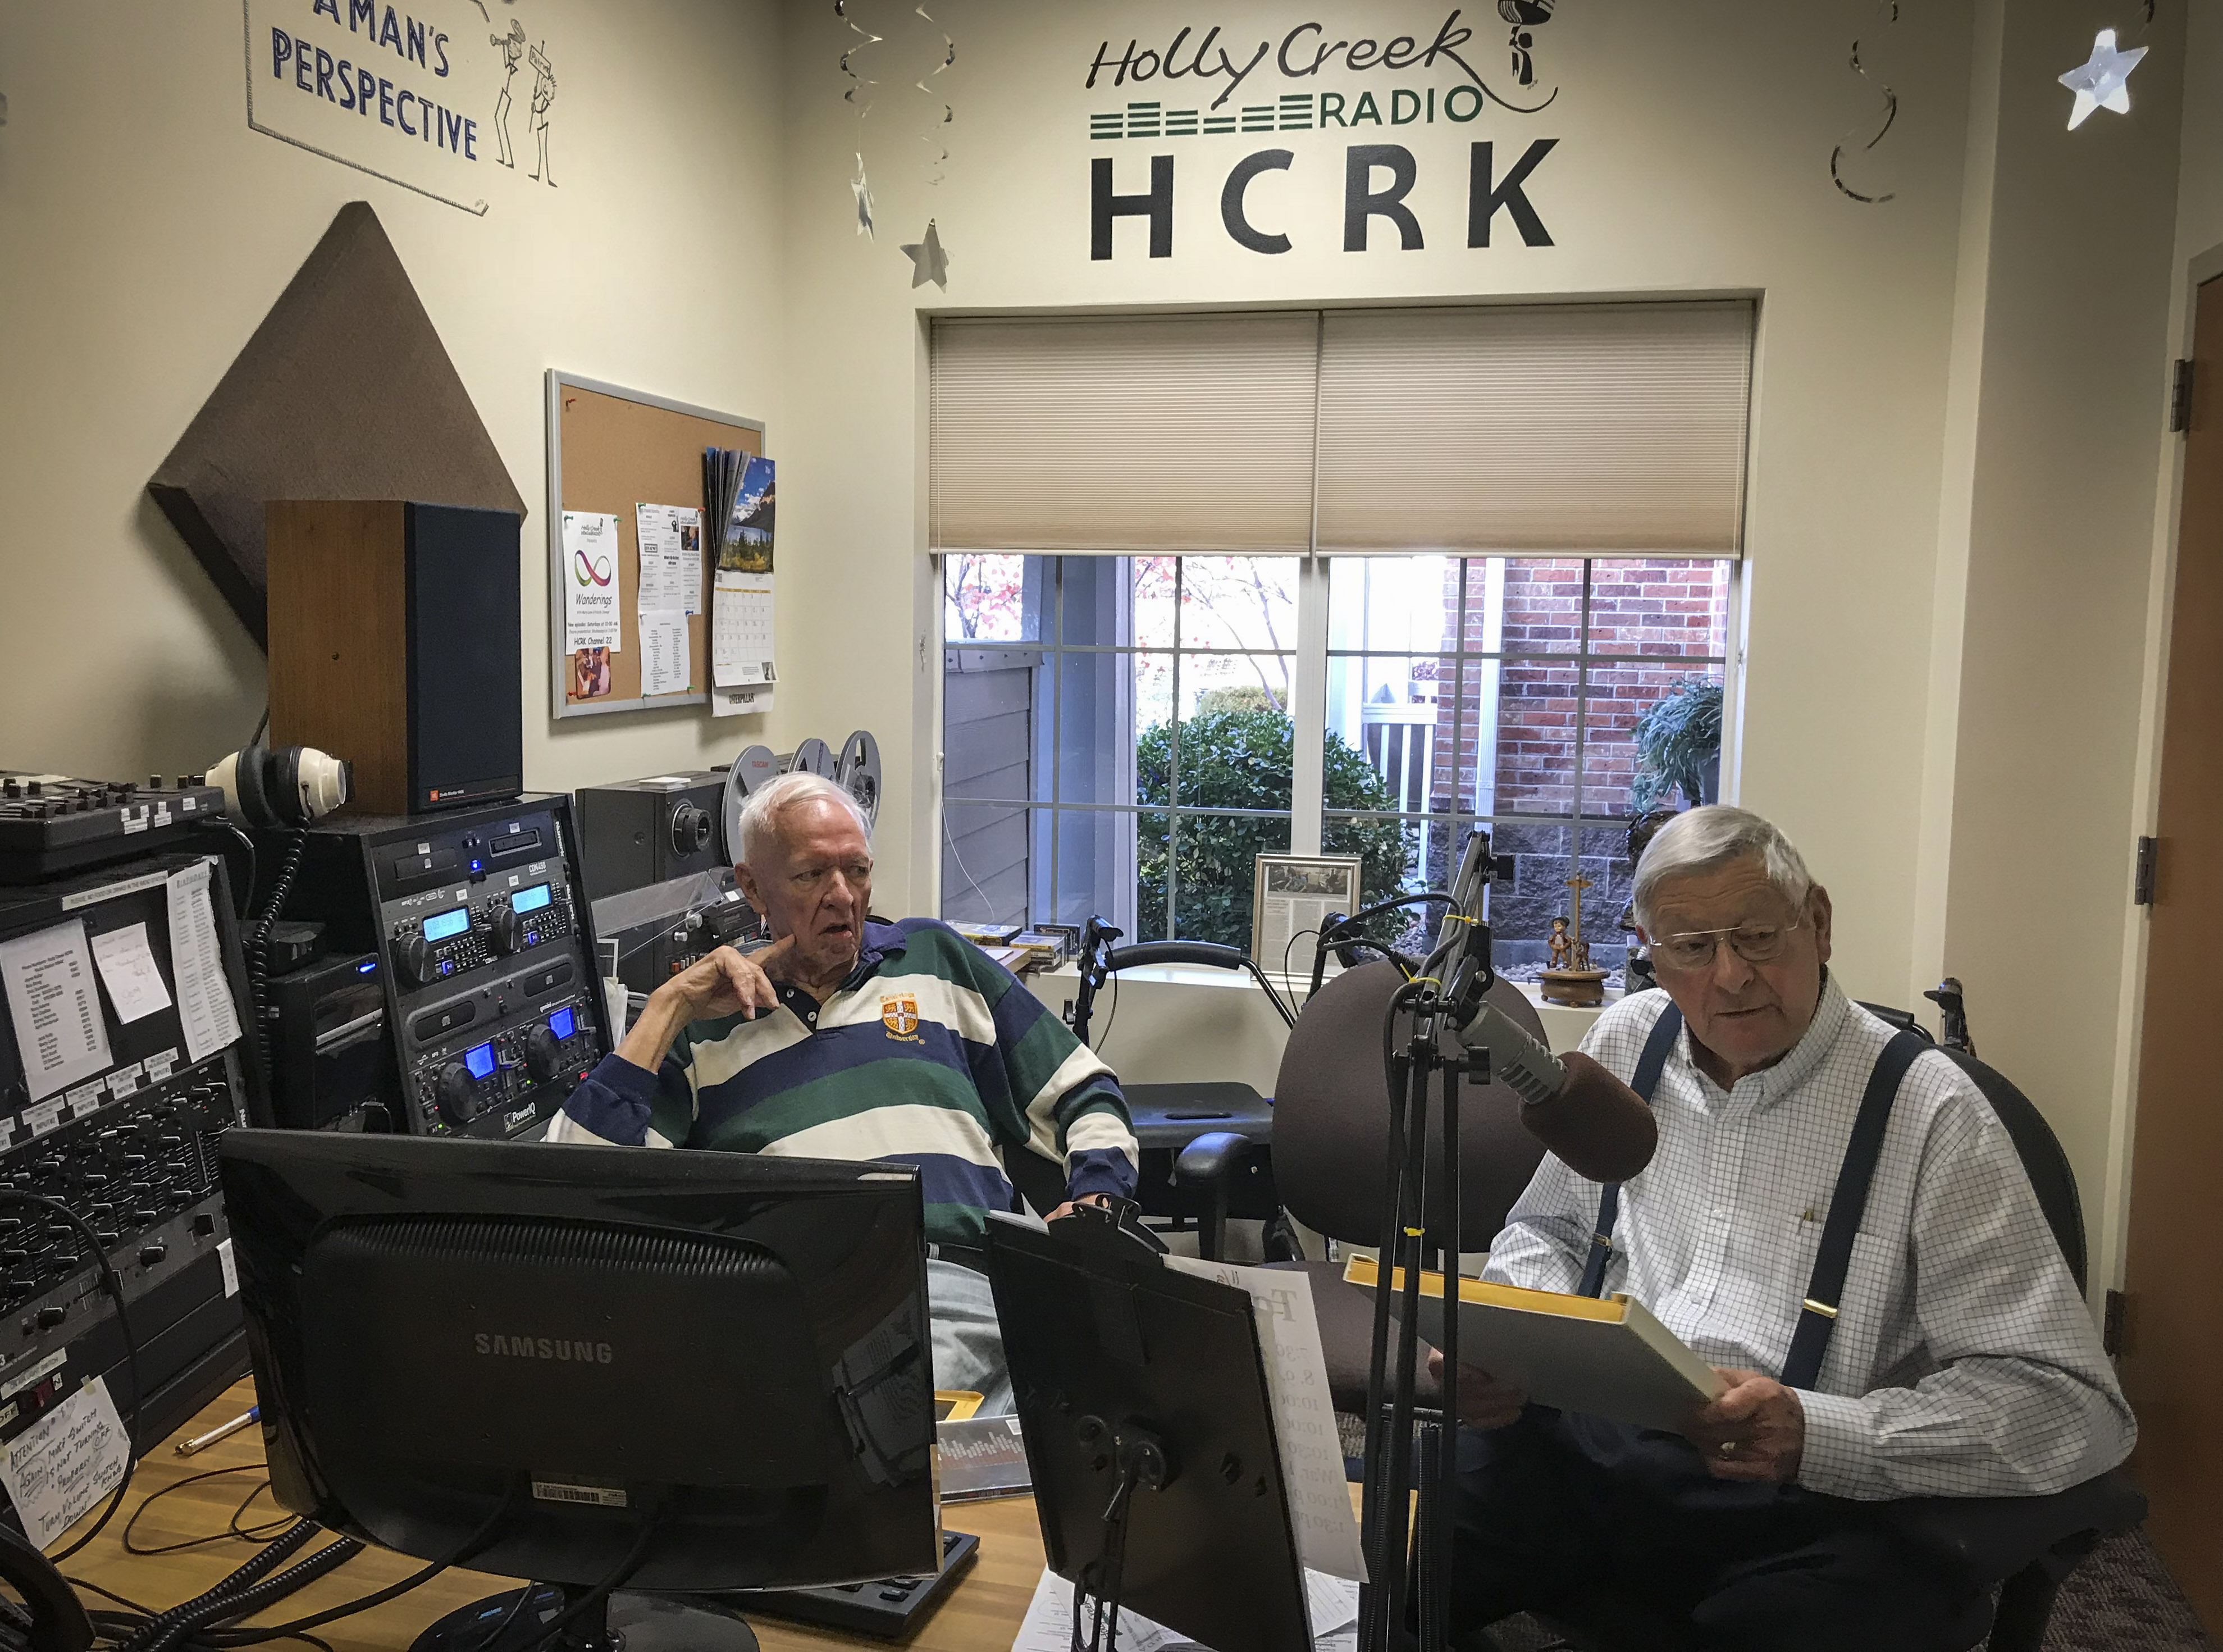 <p>Dick Gustafson, left, and Bob Stong hang out in the HCRK studio.</p>